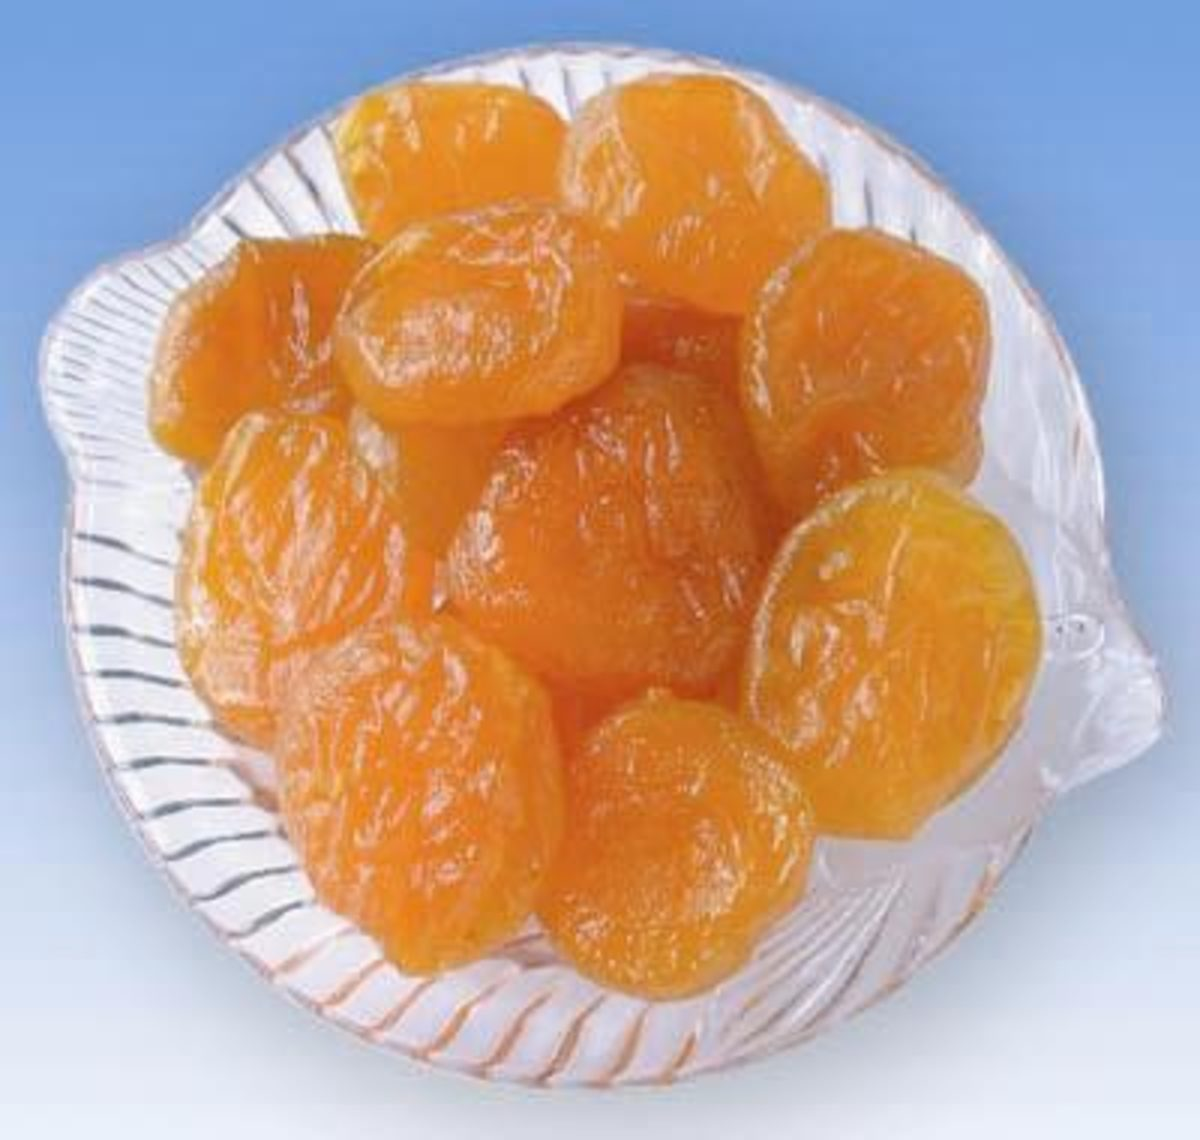 Dried Apricots - main ingredient